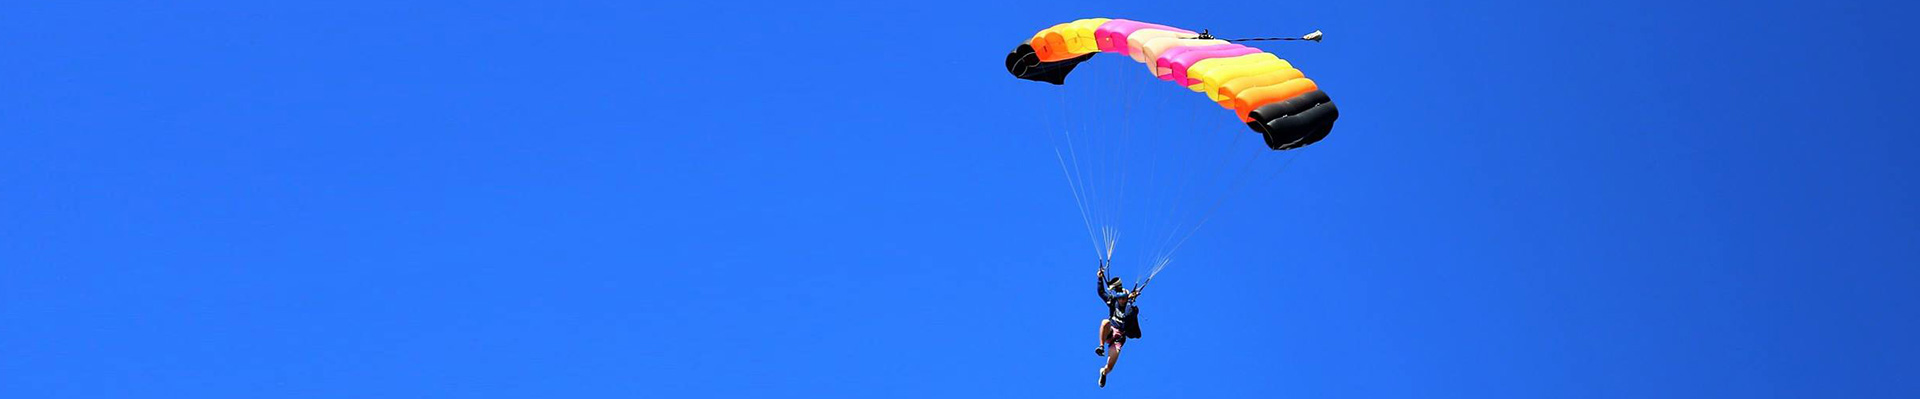 Paul C Photo Skydive Parachute Australia